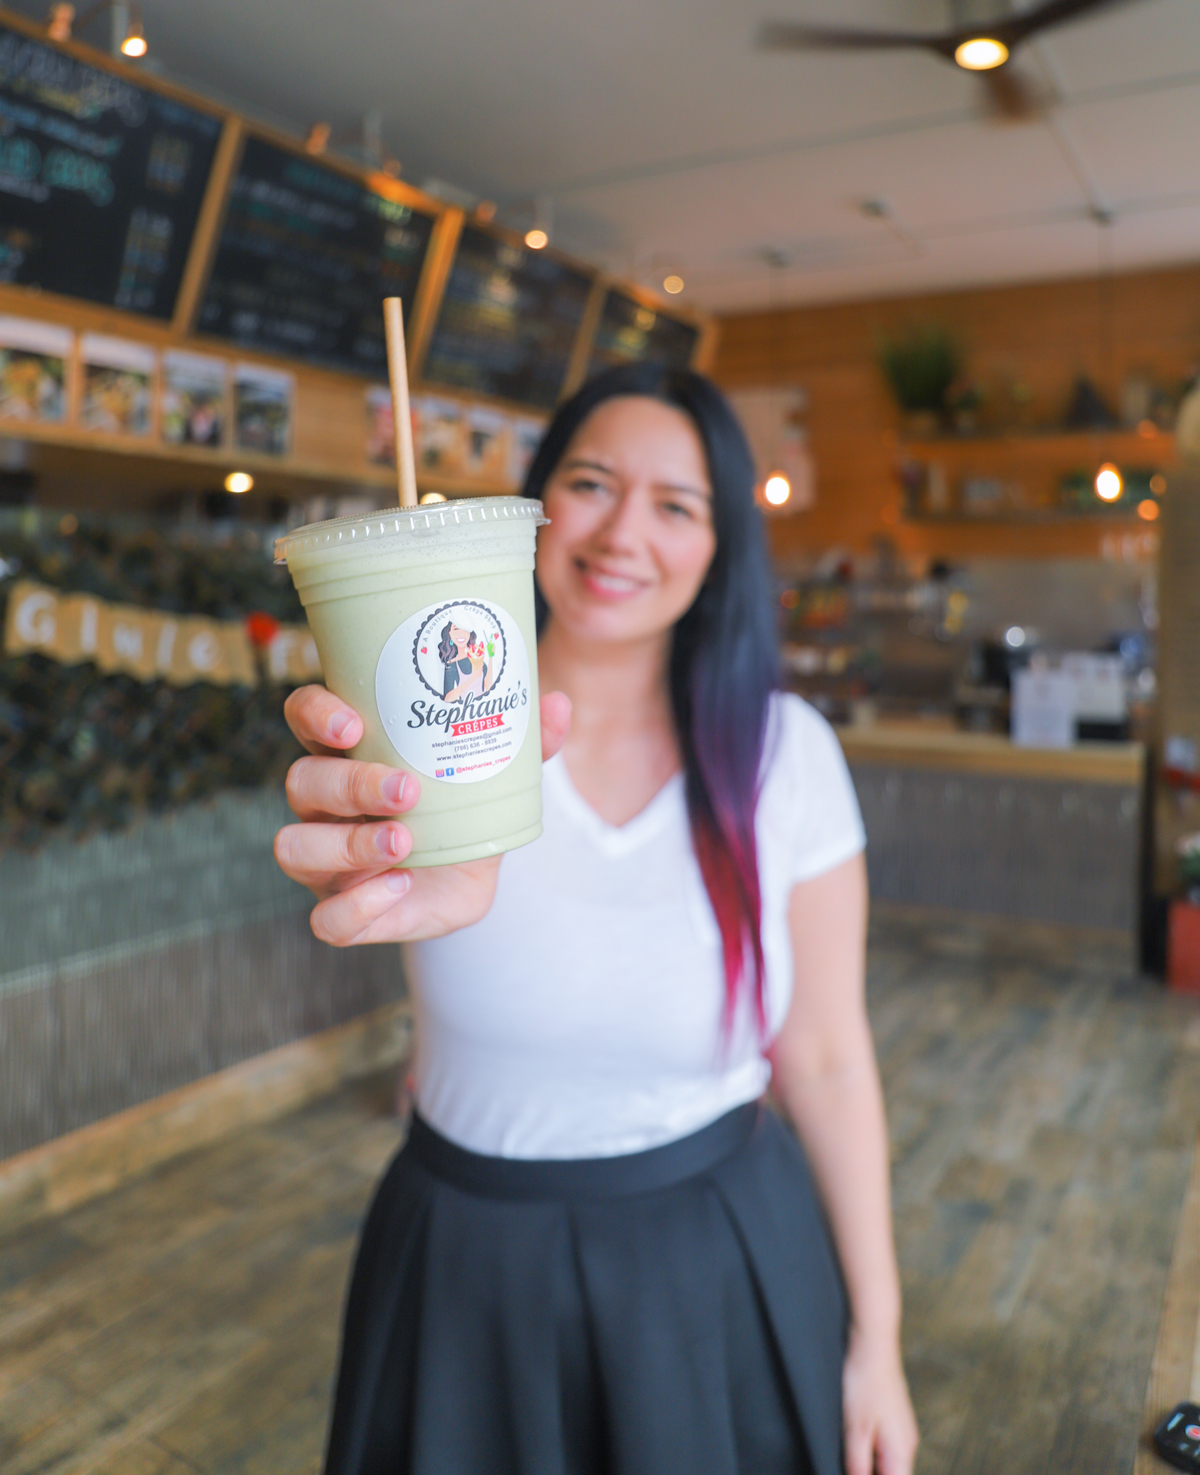 Stephanies Crepes. Gluten-free crepes in Miami, Coral Gables, Florida. Matcha Banana Smoothie